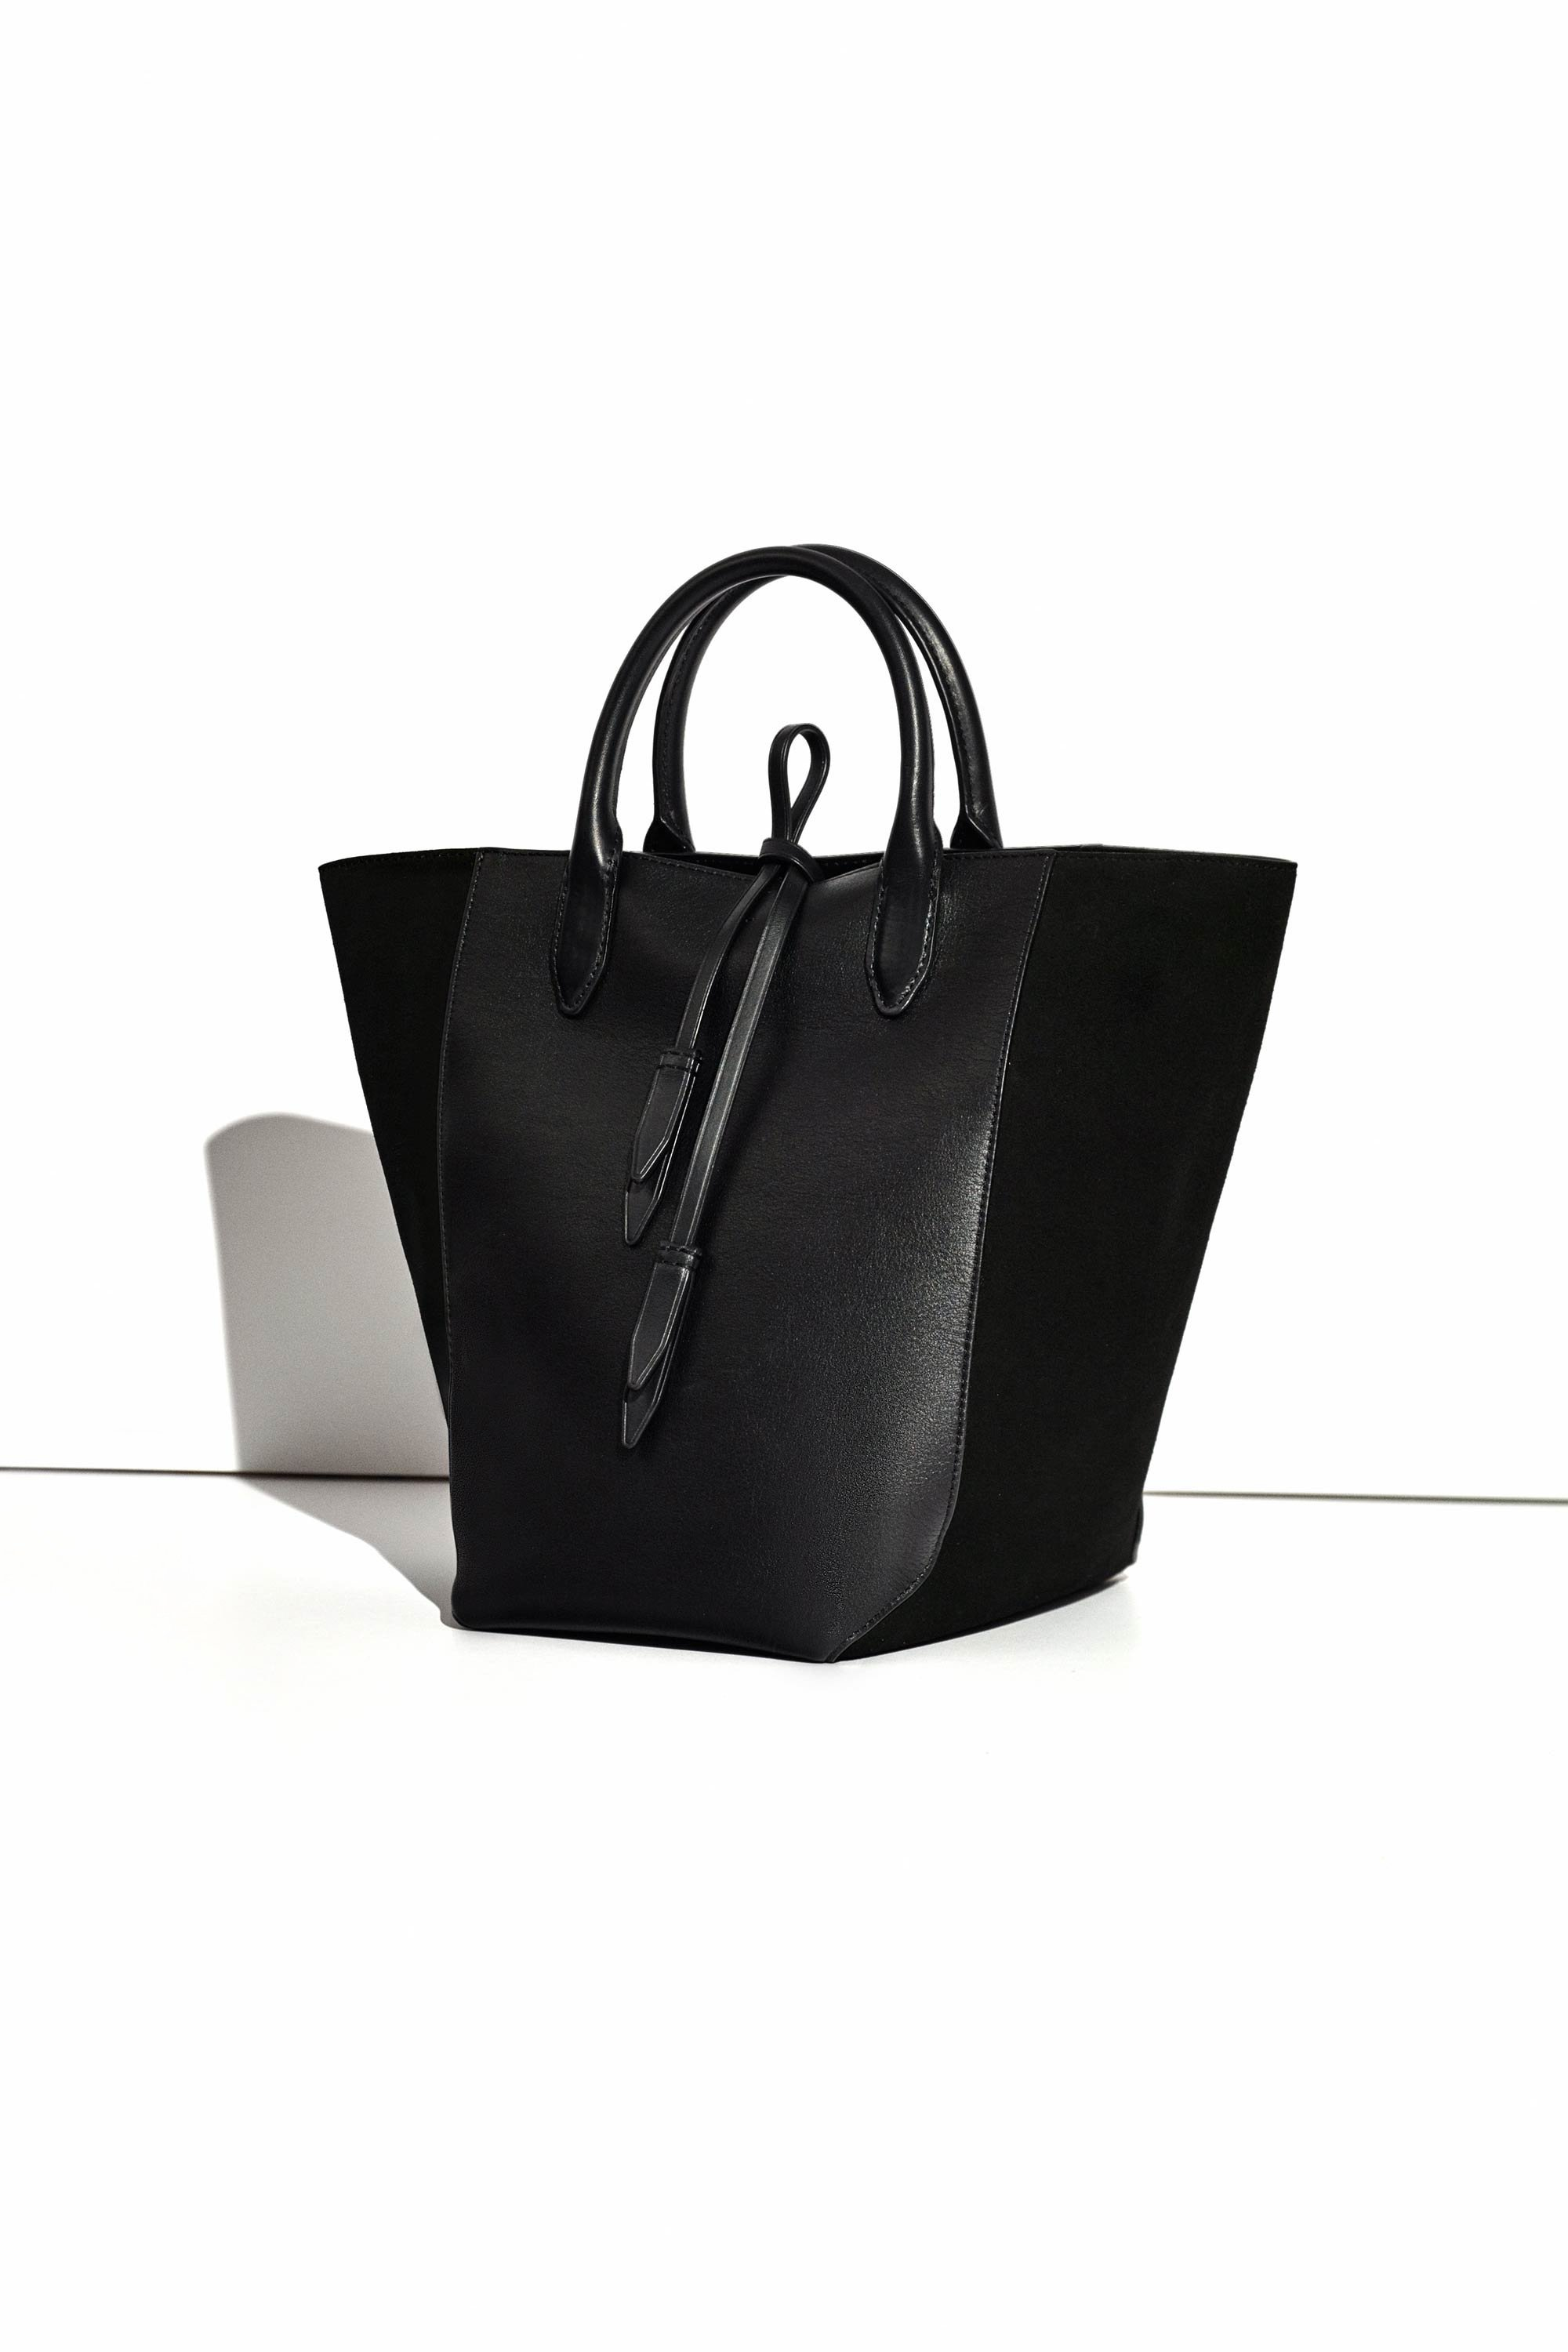 3.1 Phillip Lim Bianca Small Tote in Black